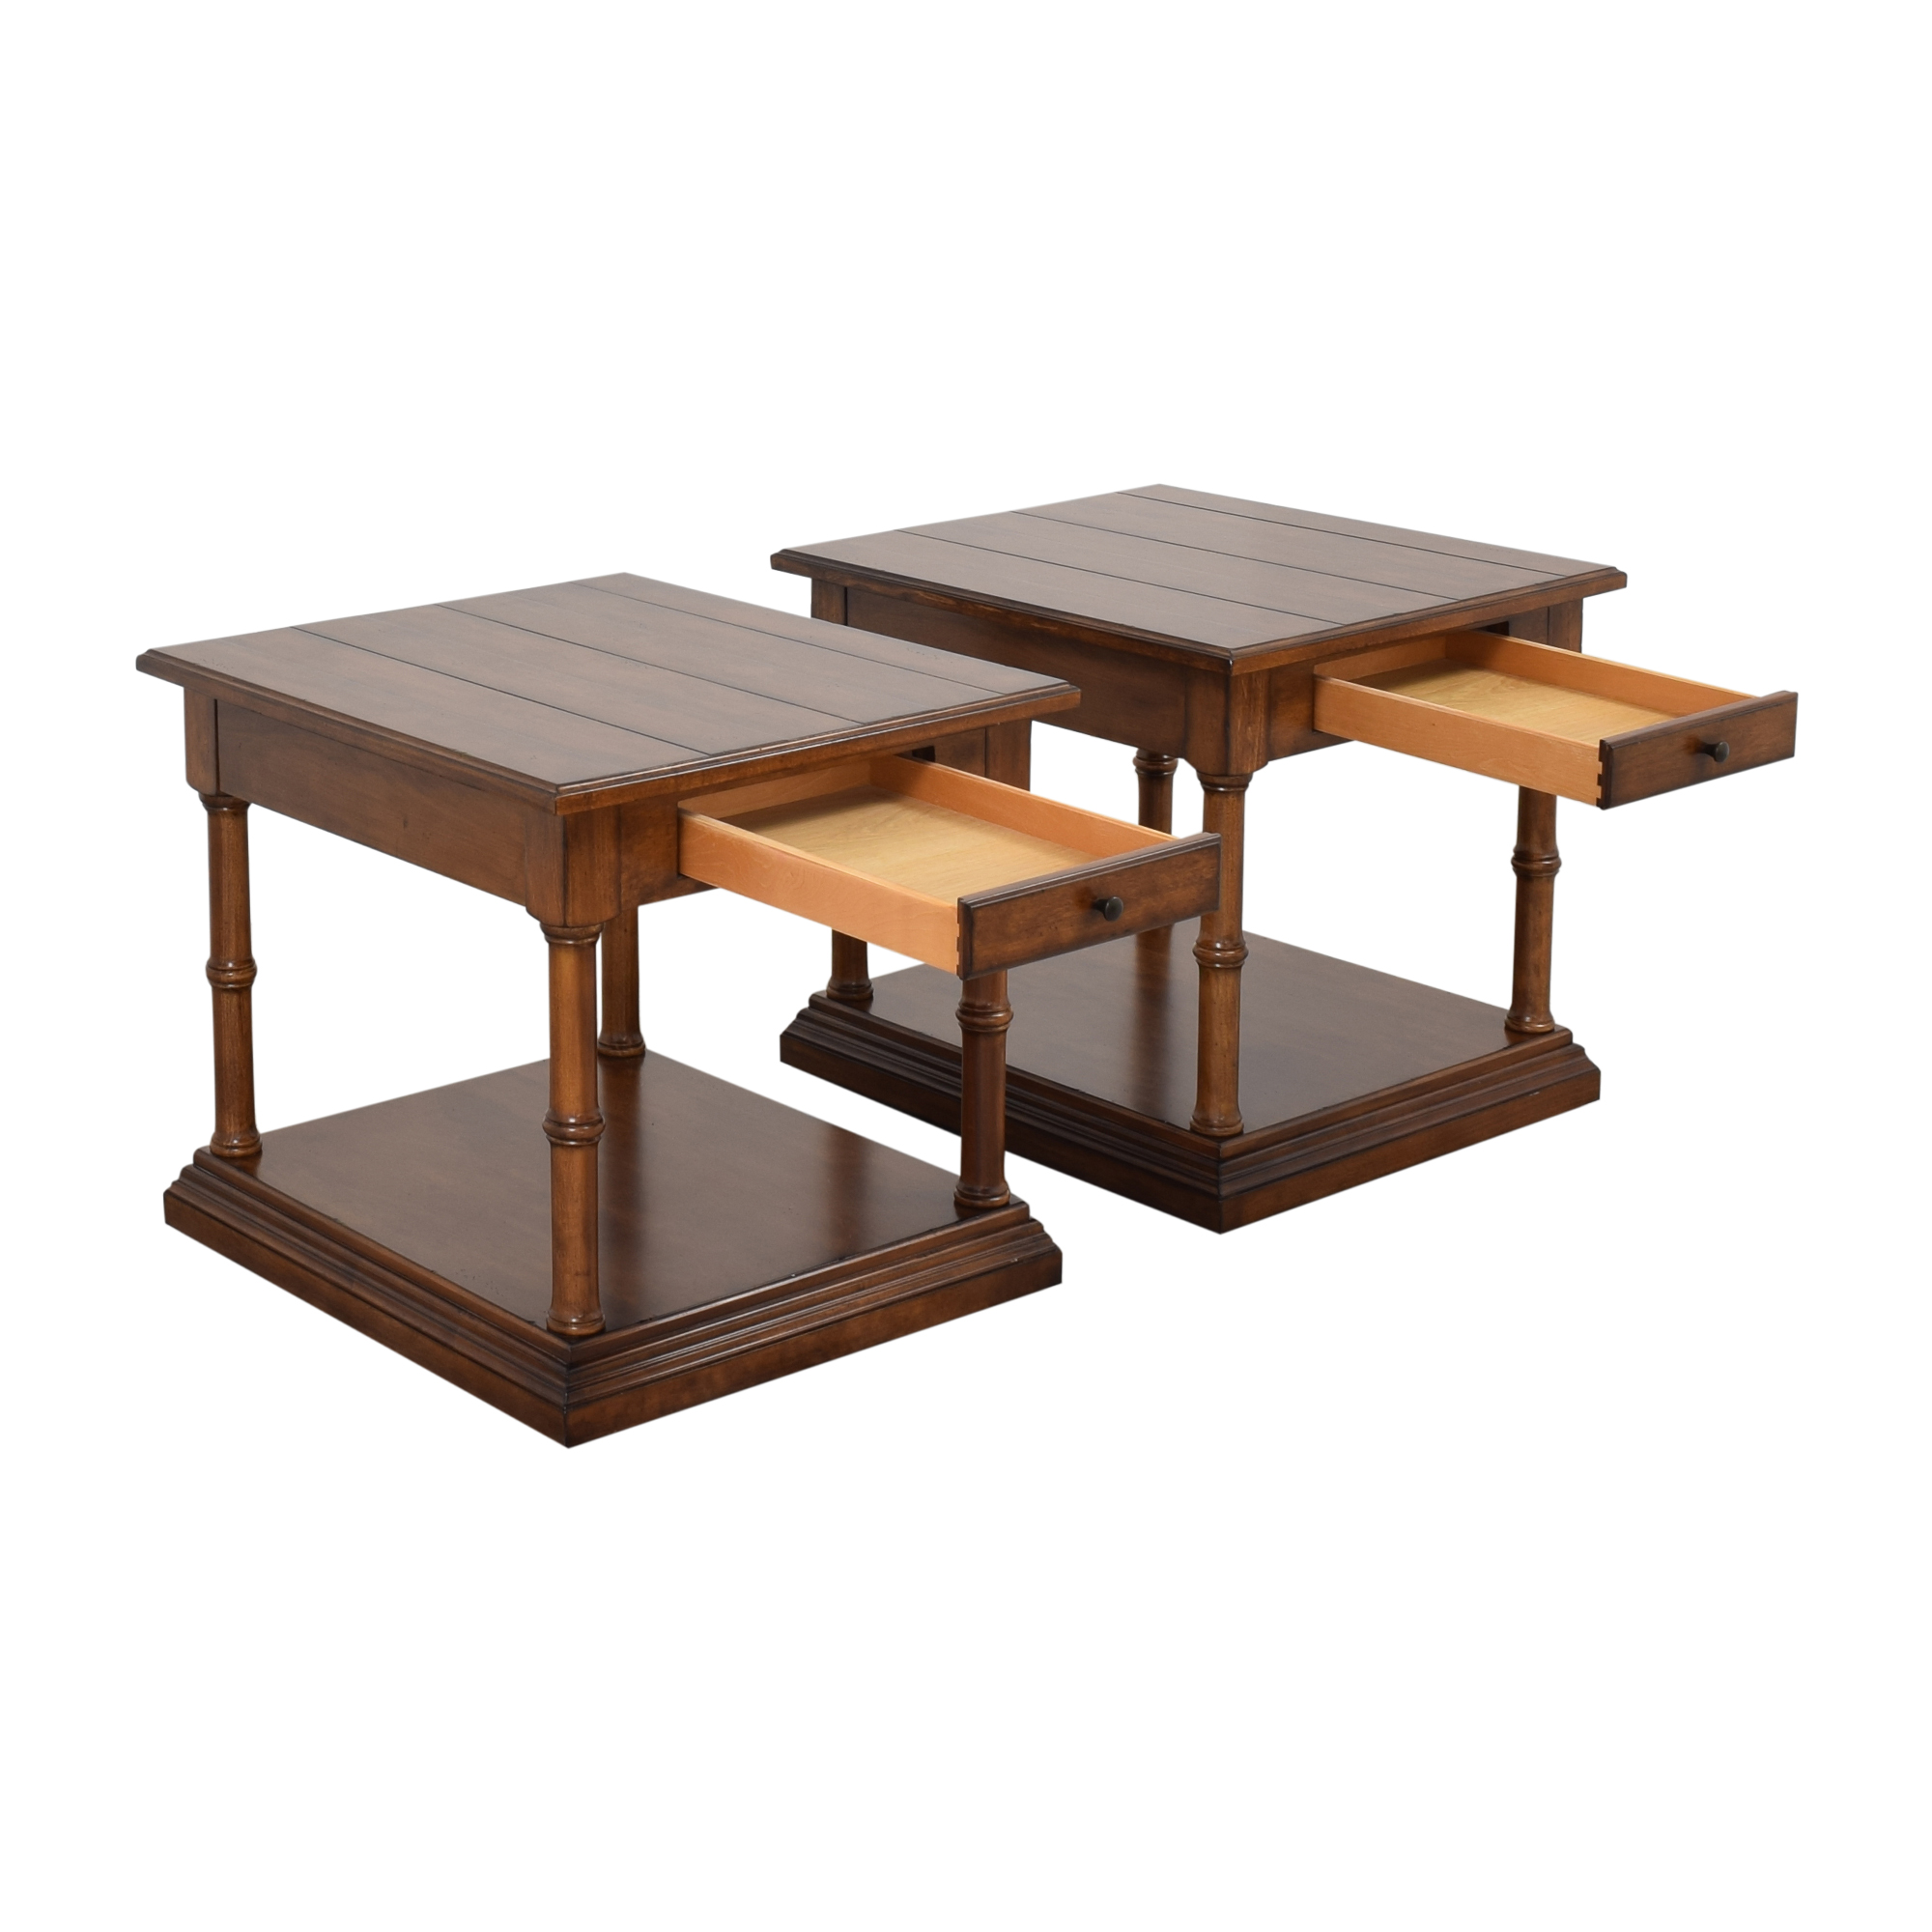 Thomasville Thomasville Two Tier End Tables on sale